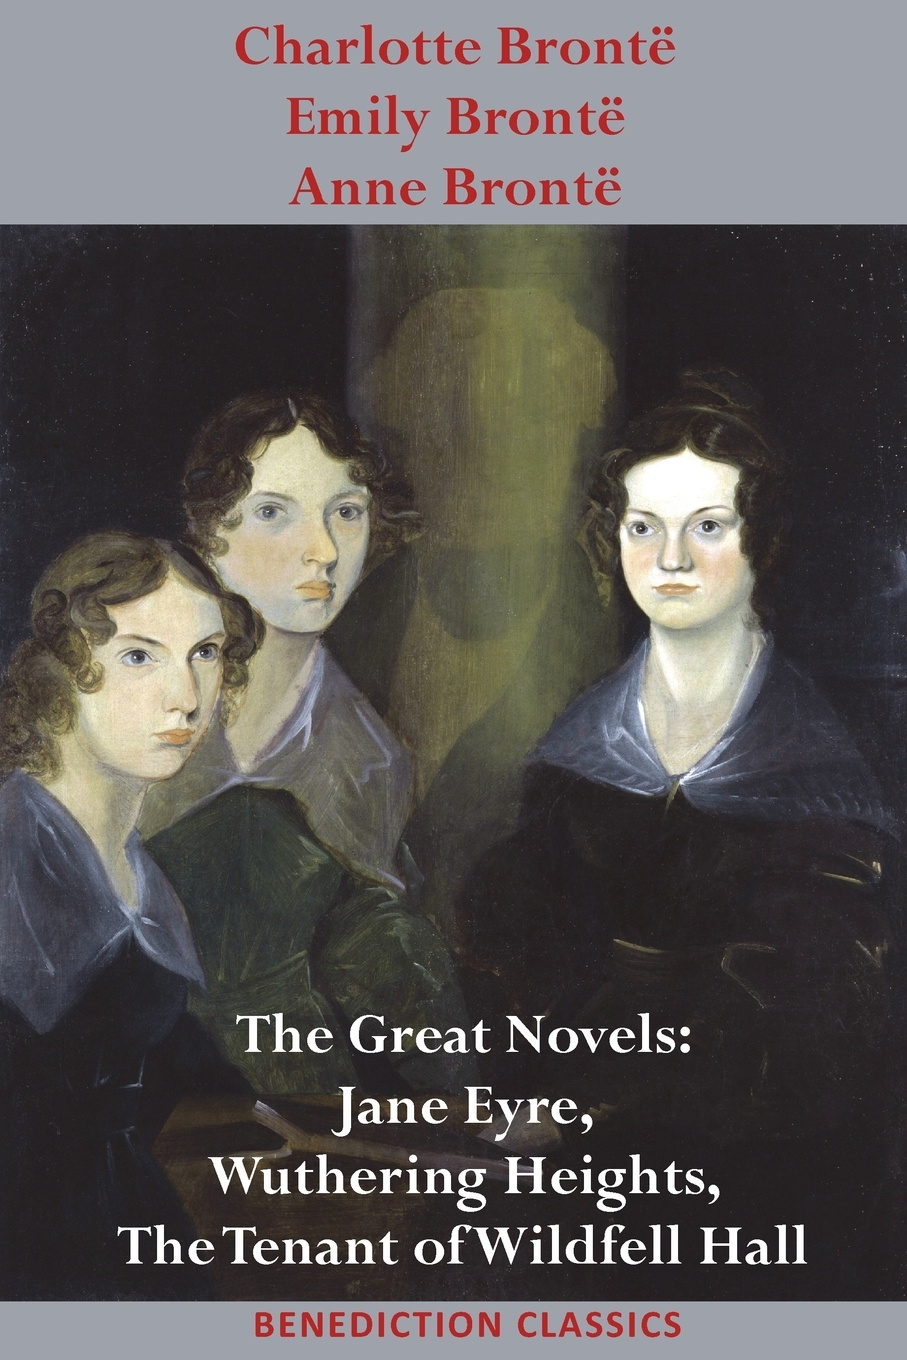 Charlotte Brontë, Emily Anne Brontë Bronte, Bronte and Bronte. The Great Novels: Jane Eyre, Wuthering Heights, Tenant of Wildfell Hall